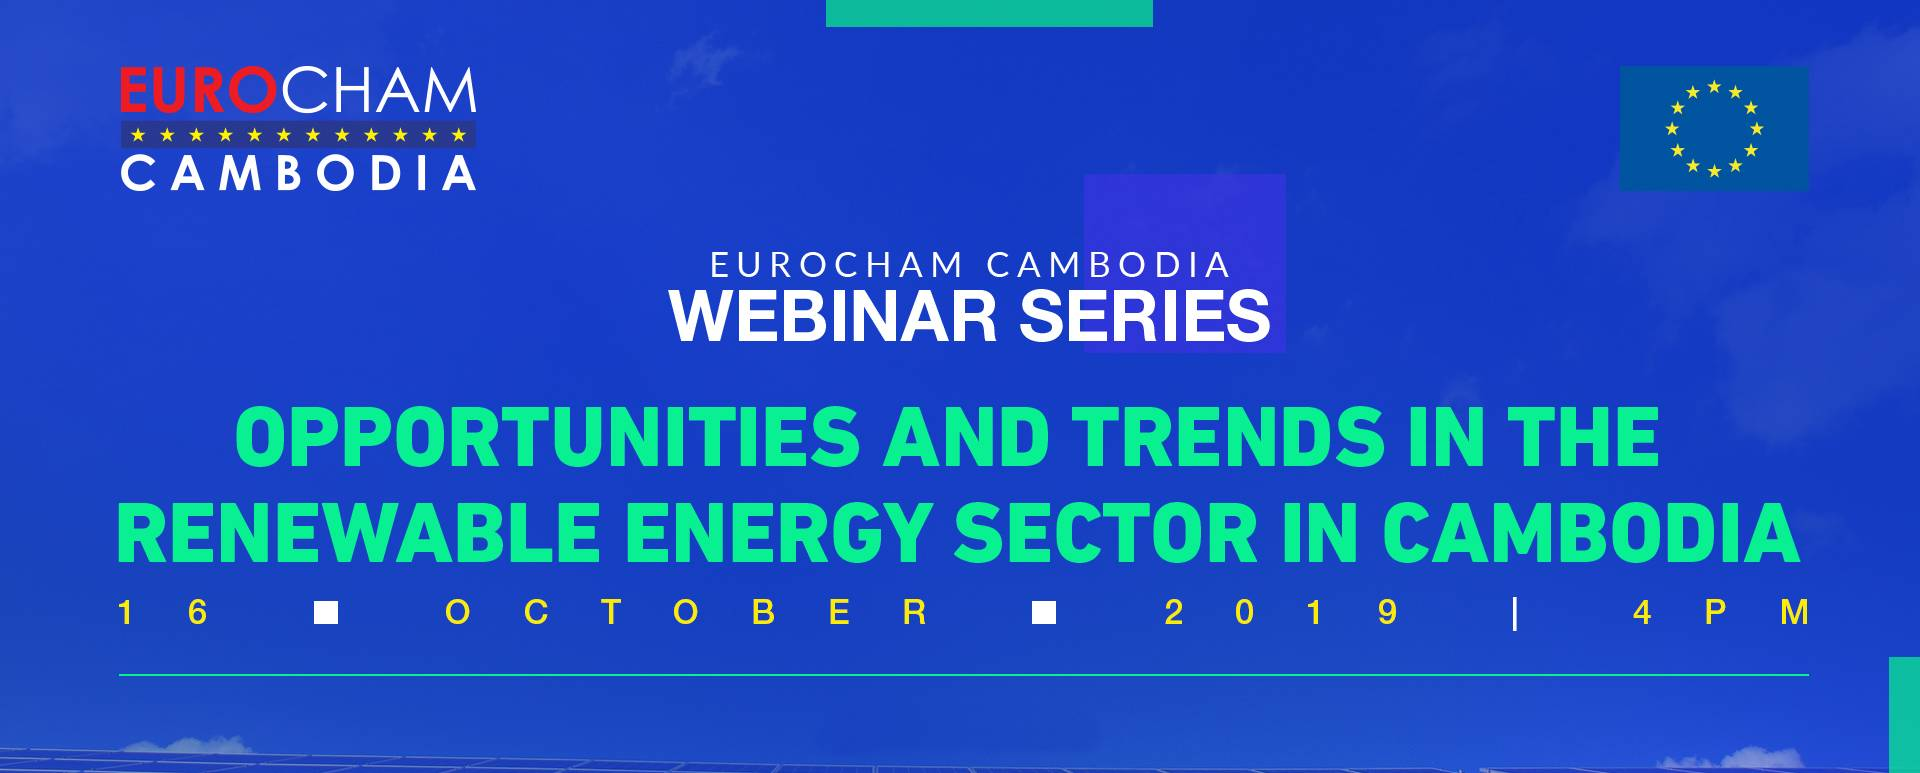 Opportunities and Trends in the Renewable Energy Sector in Cambodia